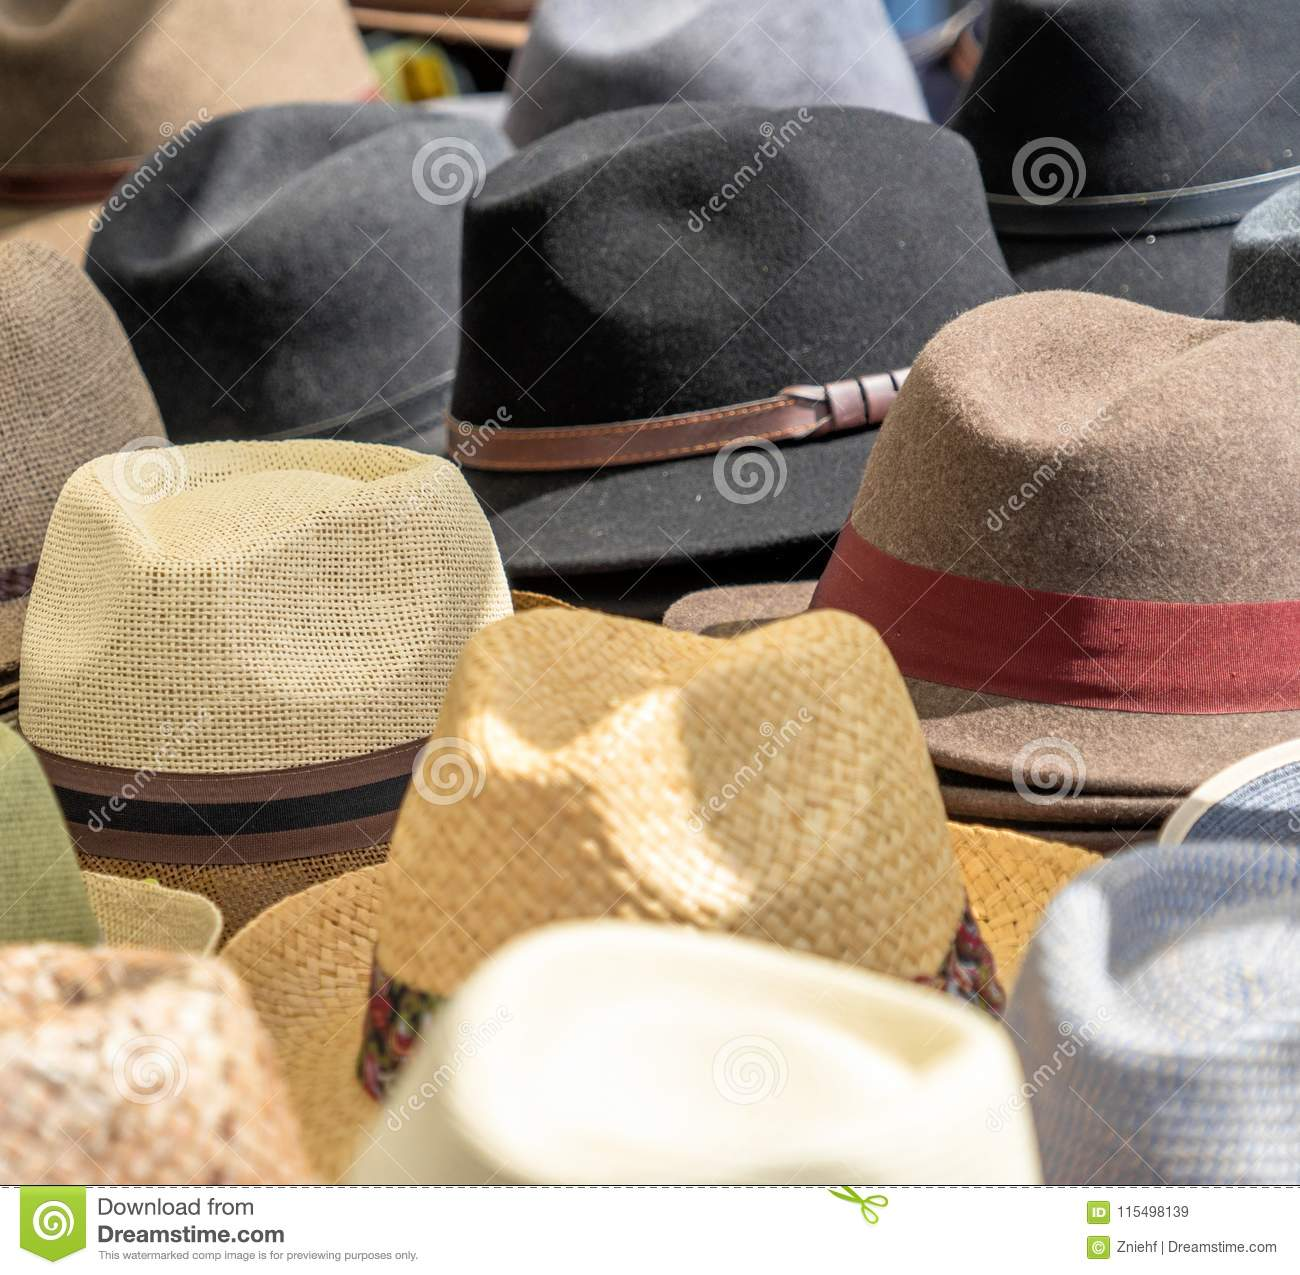 Many hats for men in different shapes and colors in one display for sale 6fbca435a1e7